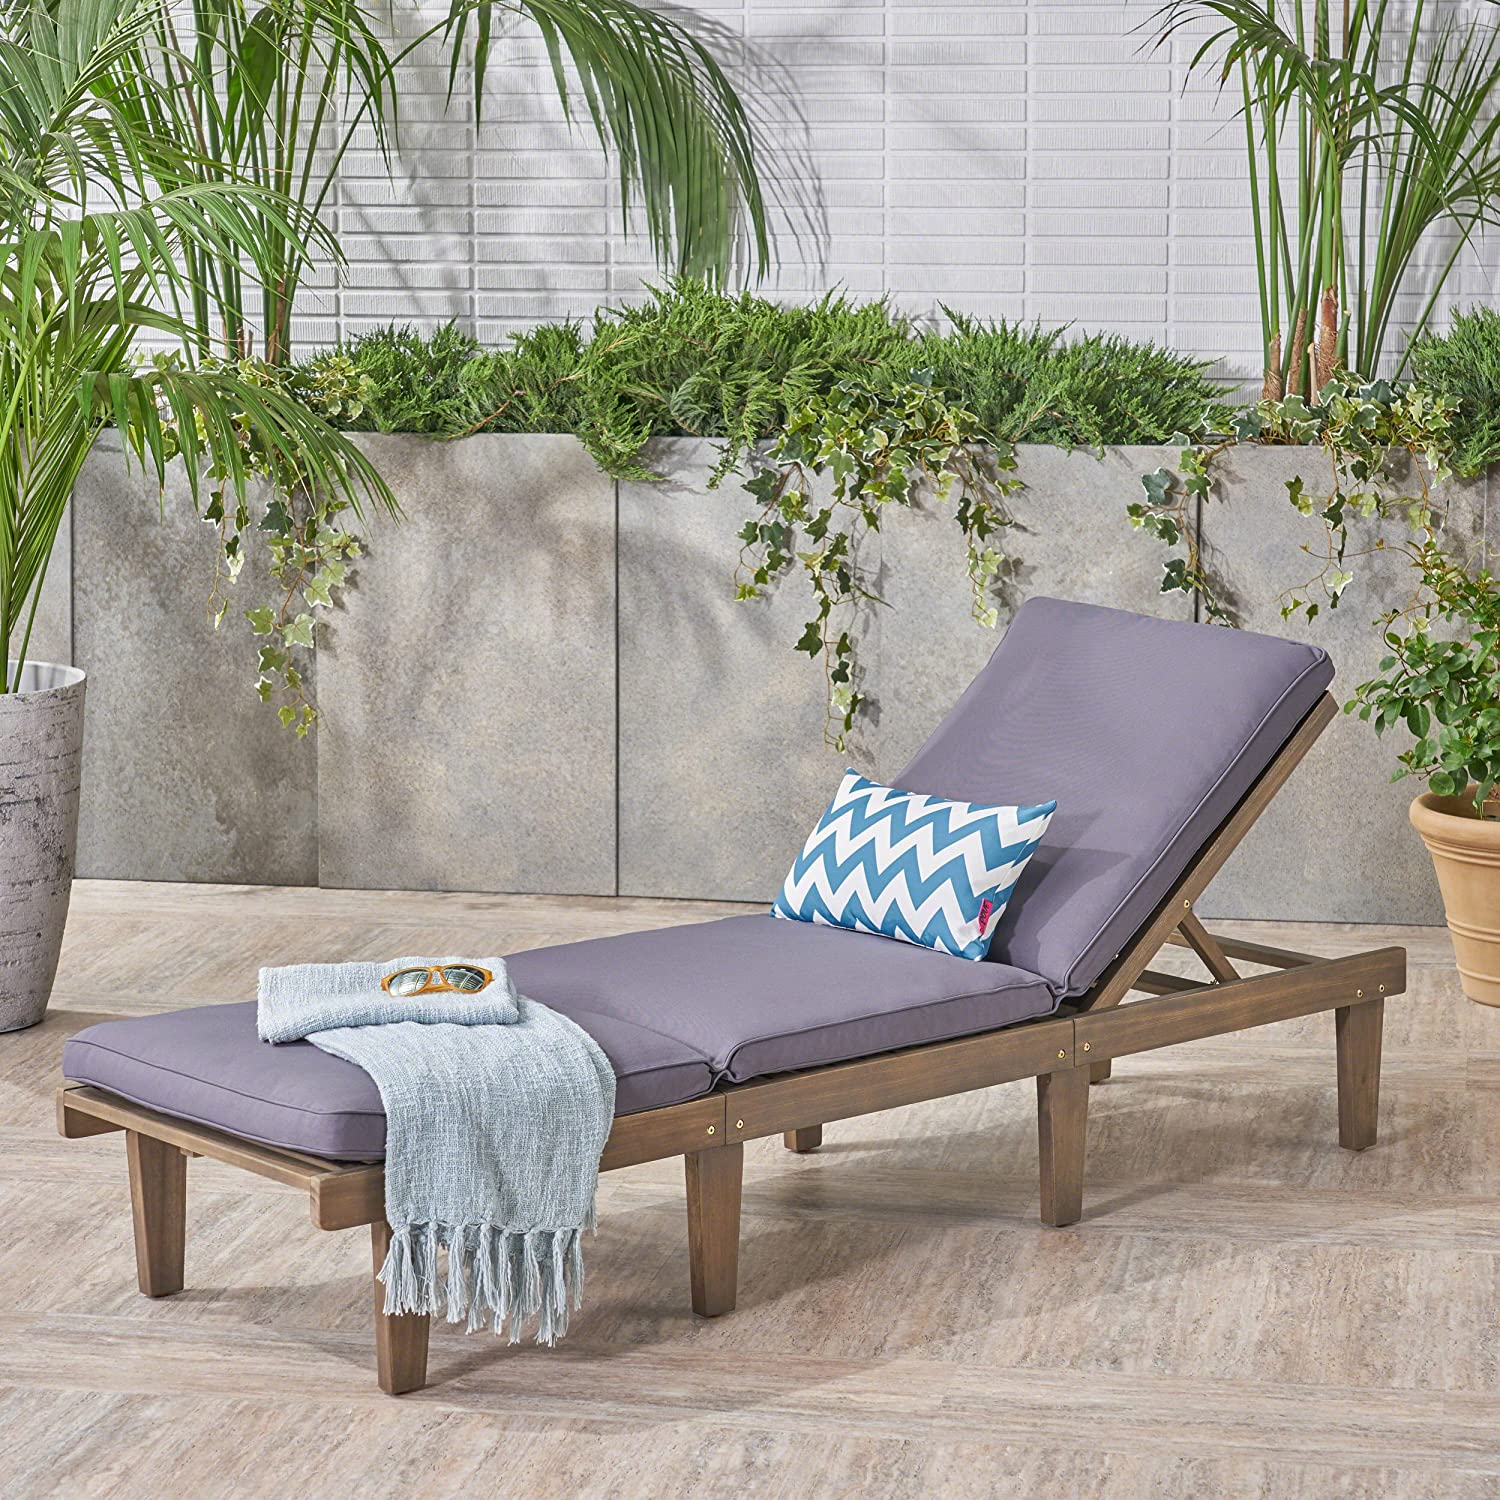 Great Deal Furniture 304376 Alisa Outdoor Acacia Wood Chaise Lounge with Cushion, Dark Grey, Finish